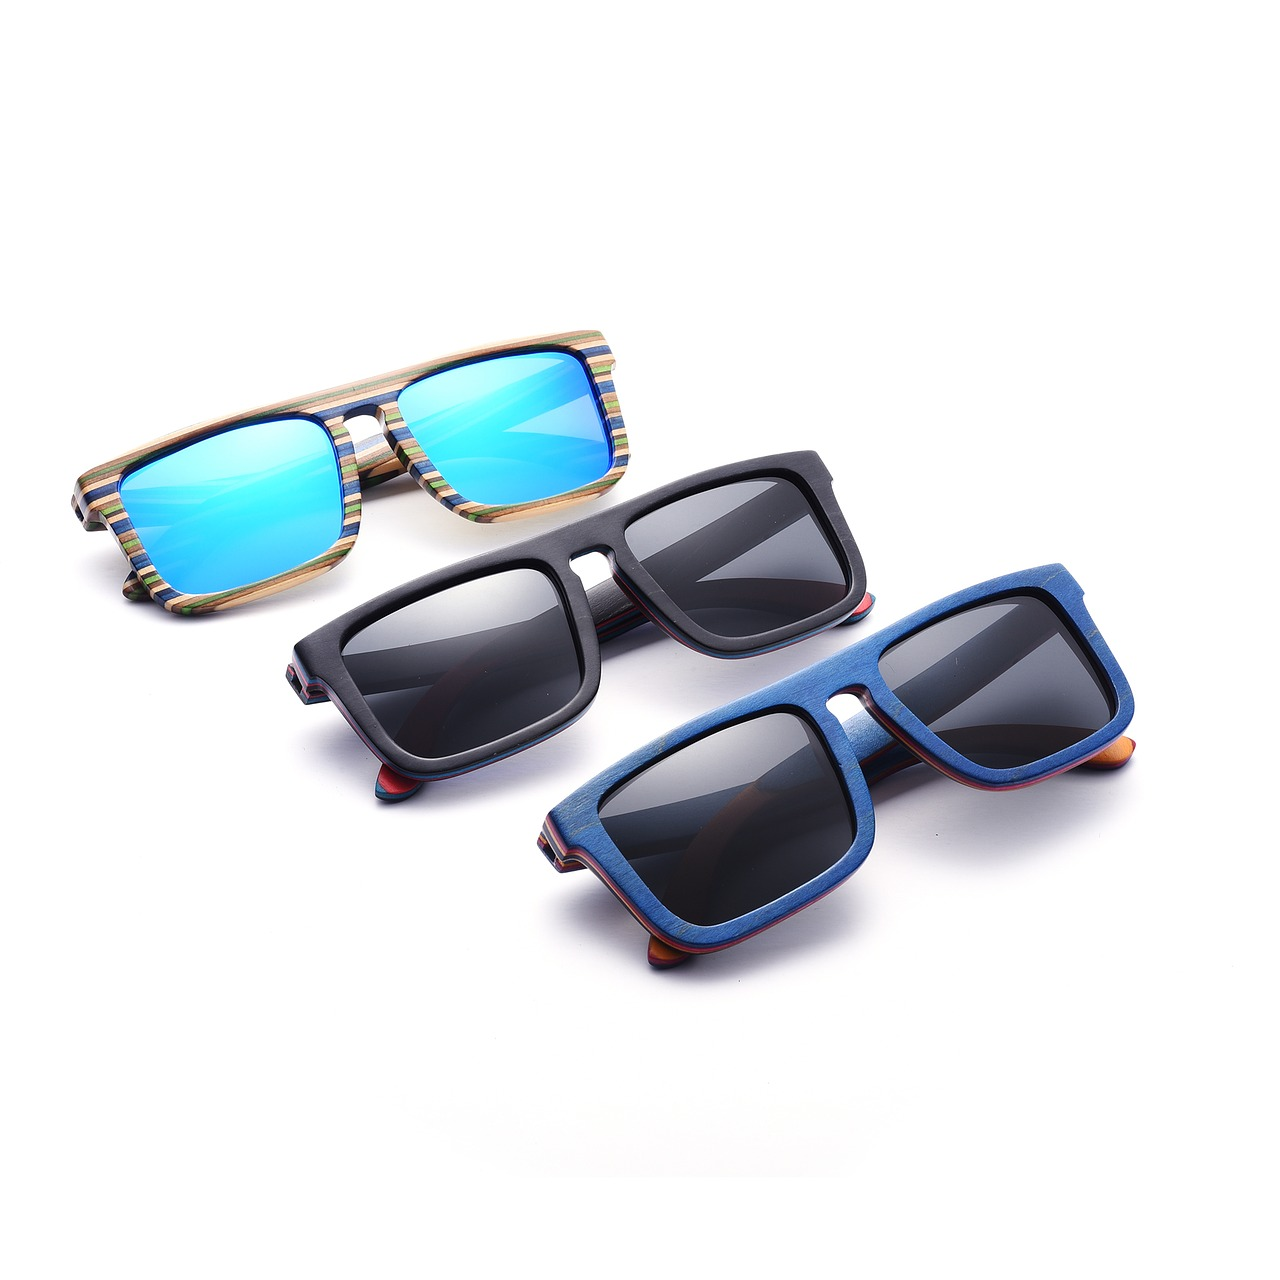 wood-sunglasses-2500253_1280.jpg